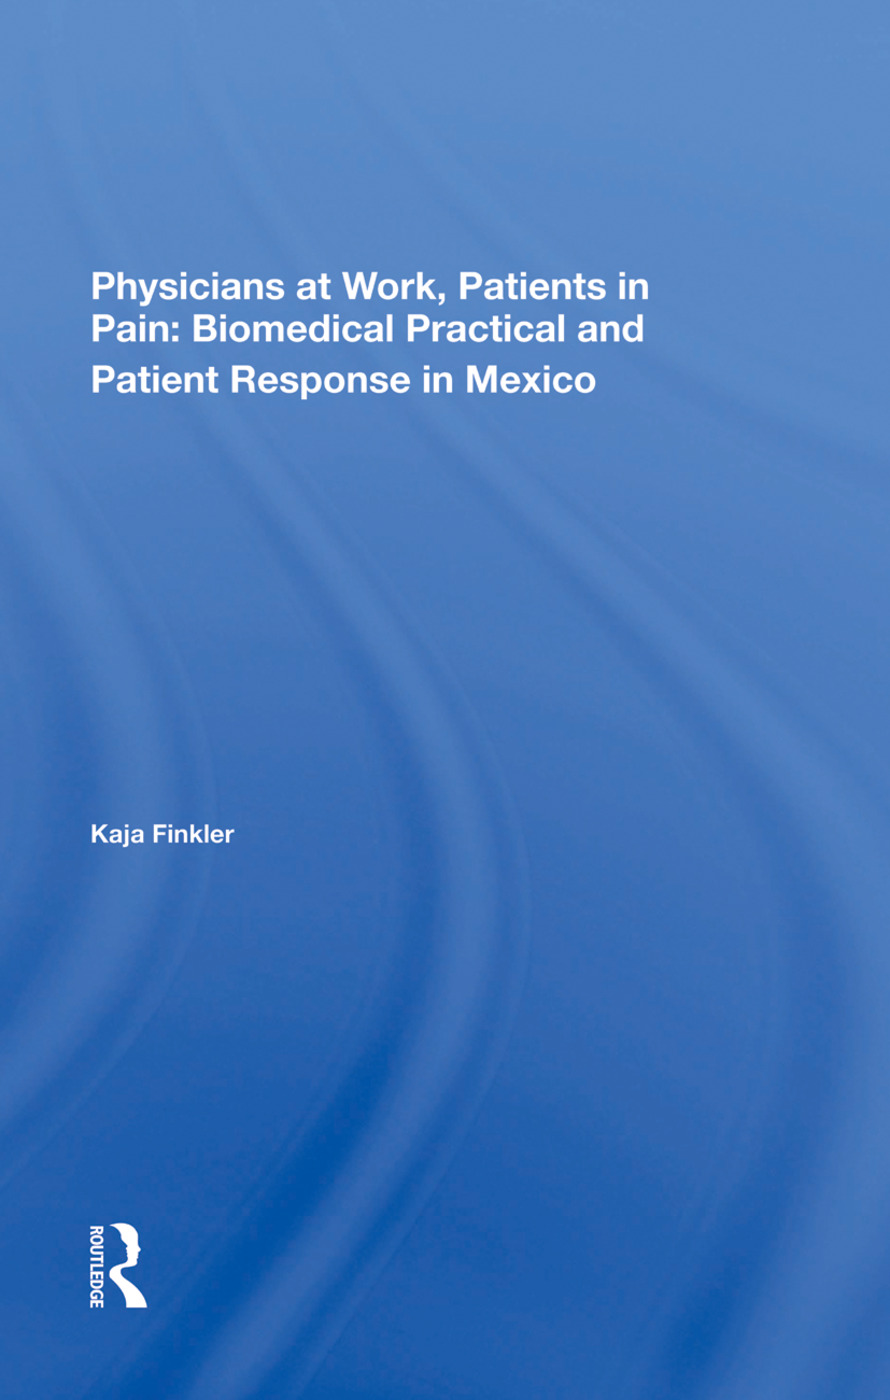 Physicians At Work, Patients In Pain: Biomedical Practice And Patient Response In Mexico book cover